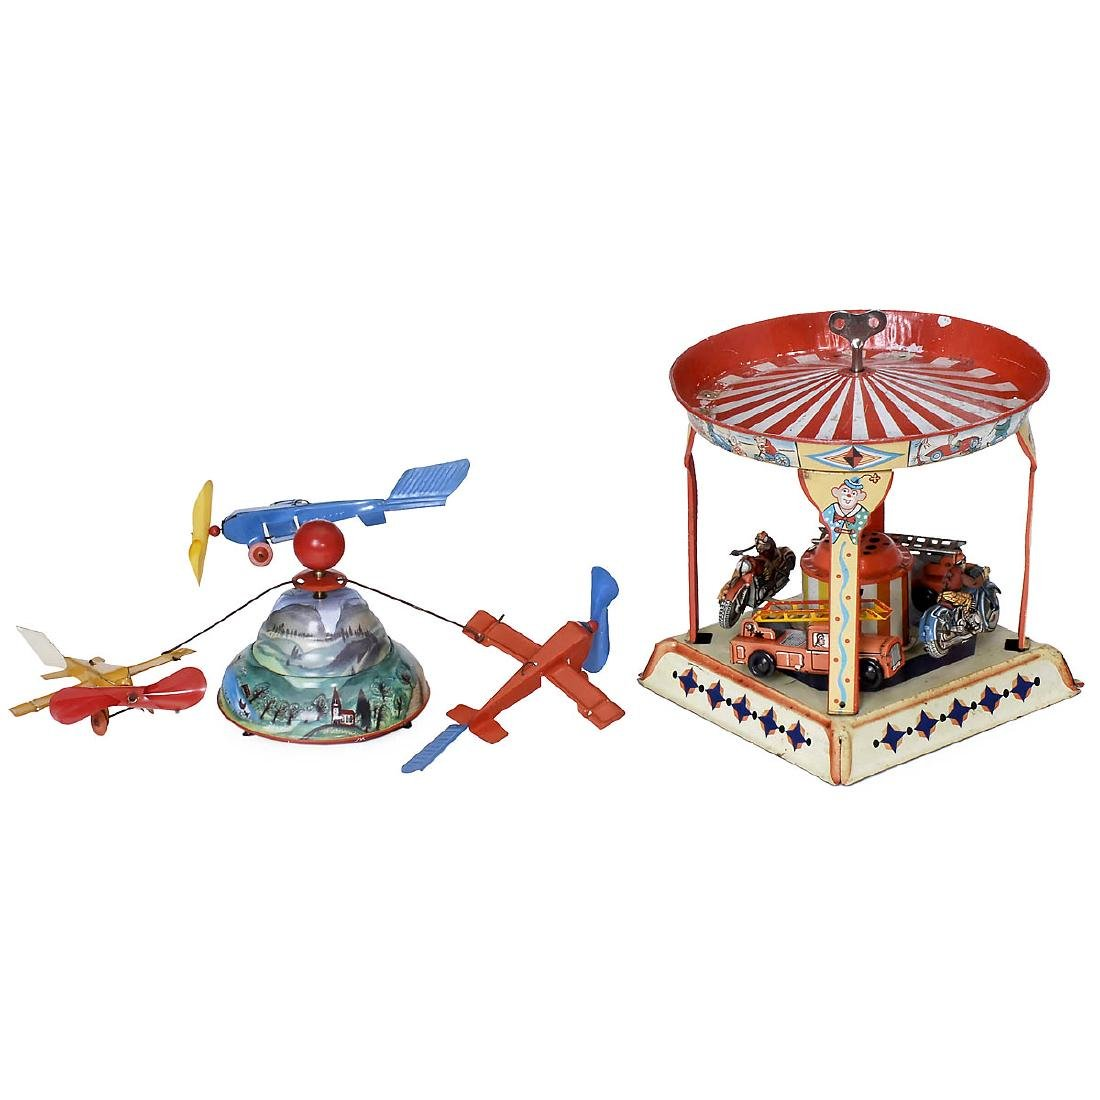 2 Tin Fairground Toys, 1950s